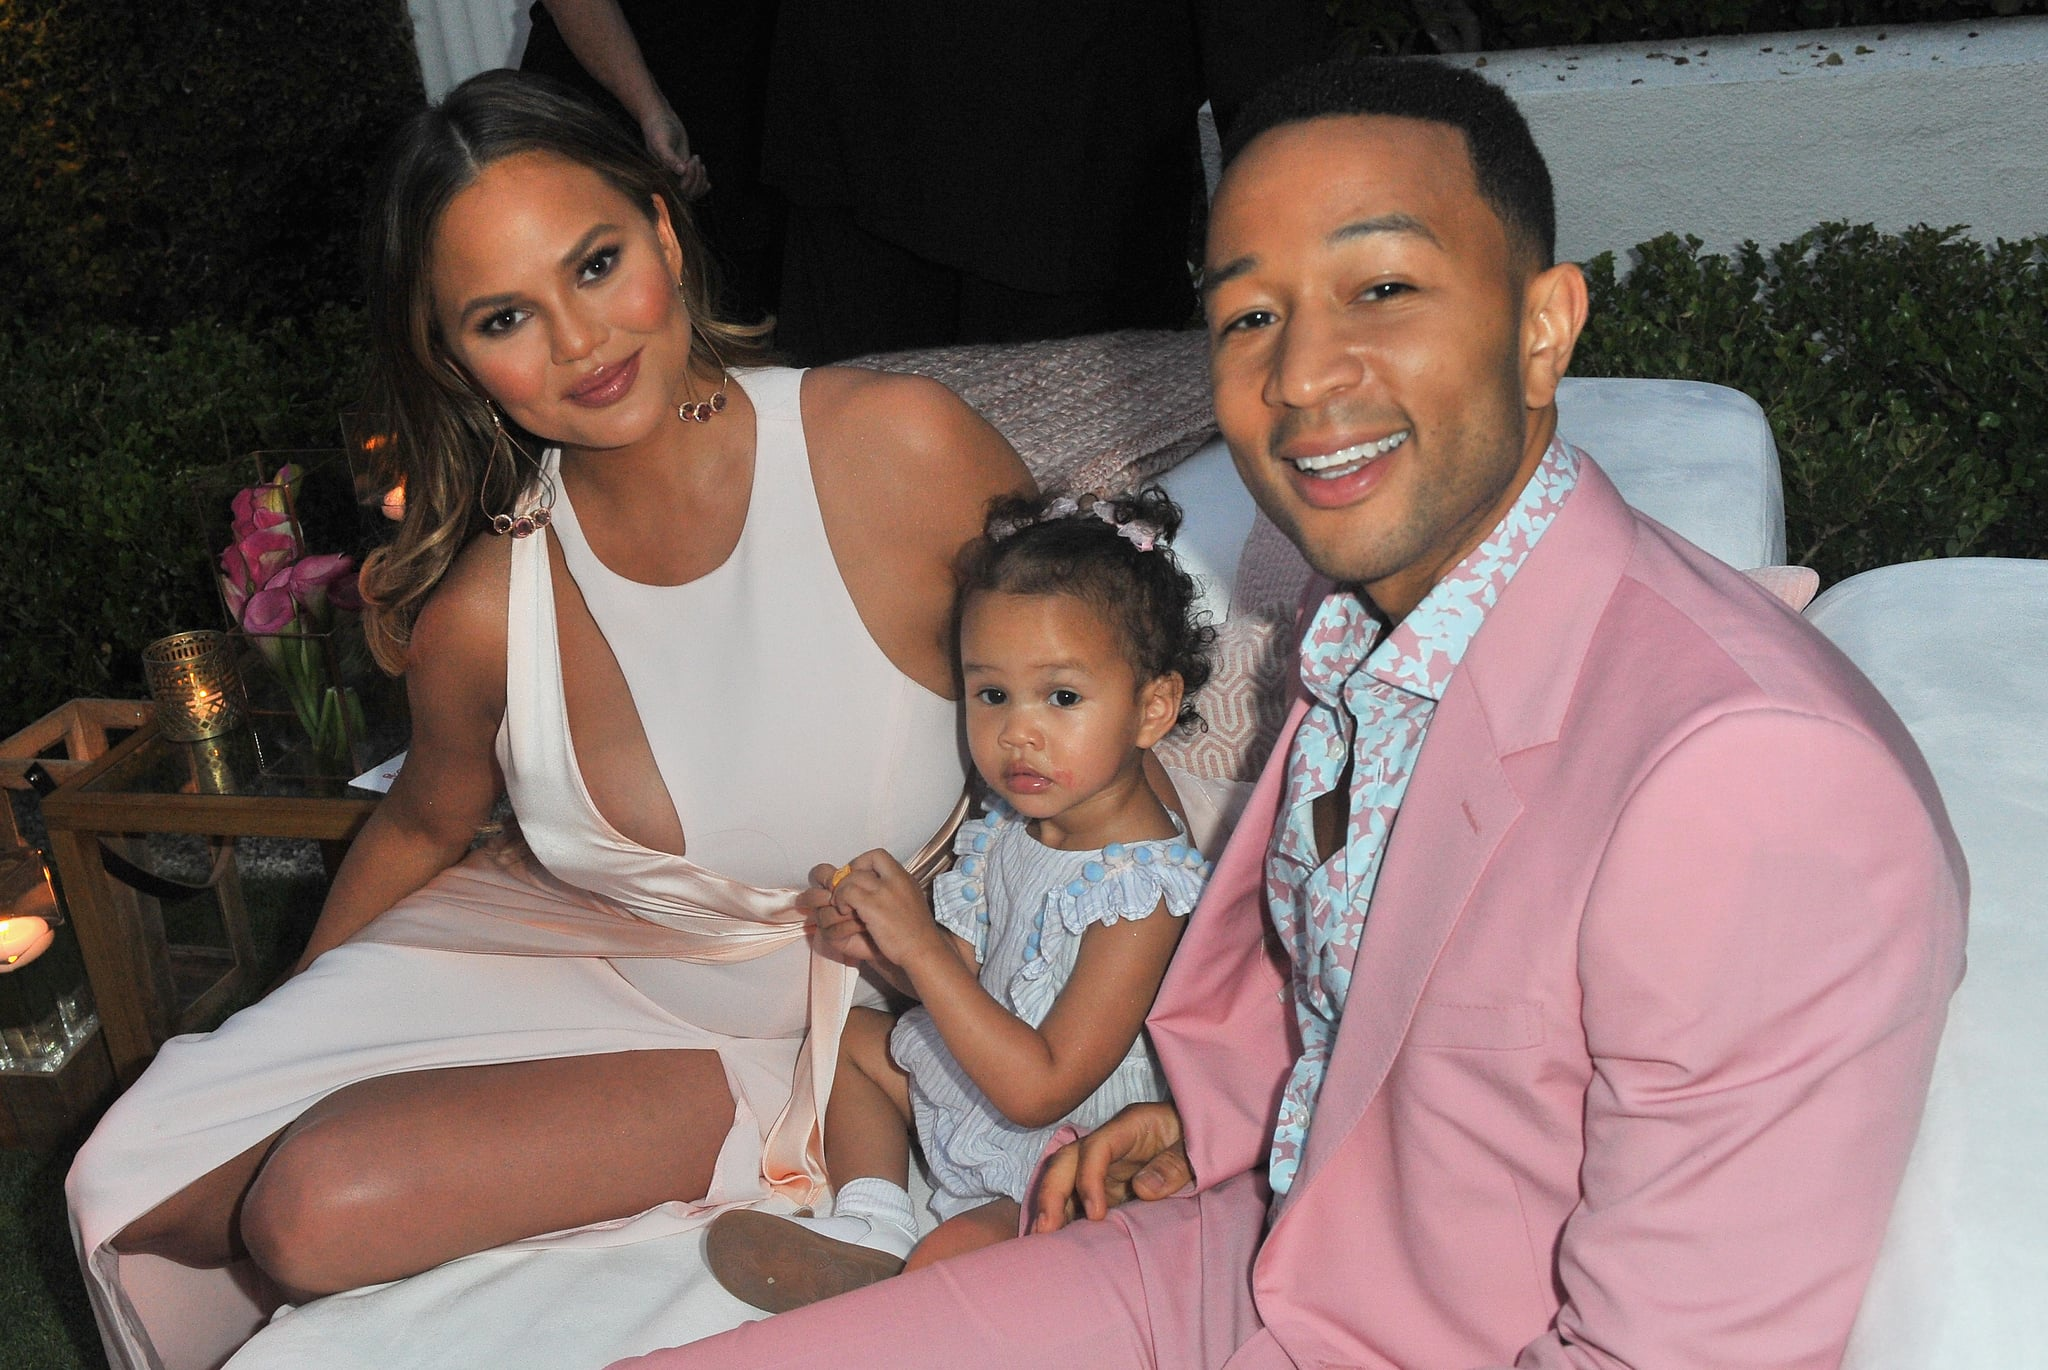 BEVERLY HILLS, CA - JUNE 21:  (L-R) Chrissy Teigen, Luna Simone Stephens and John Legend attend John Legend's launch of his new rose wine brand, LVE, during an intimate Airbnb Concert on June 21, 2018 in Beverly Hills, California.  (Photo by Jerod Harris/Getty Images for Airbnb)